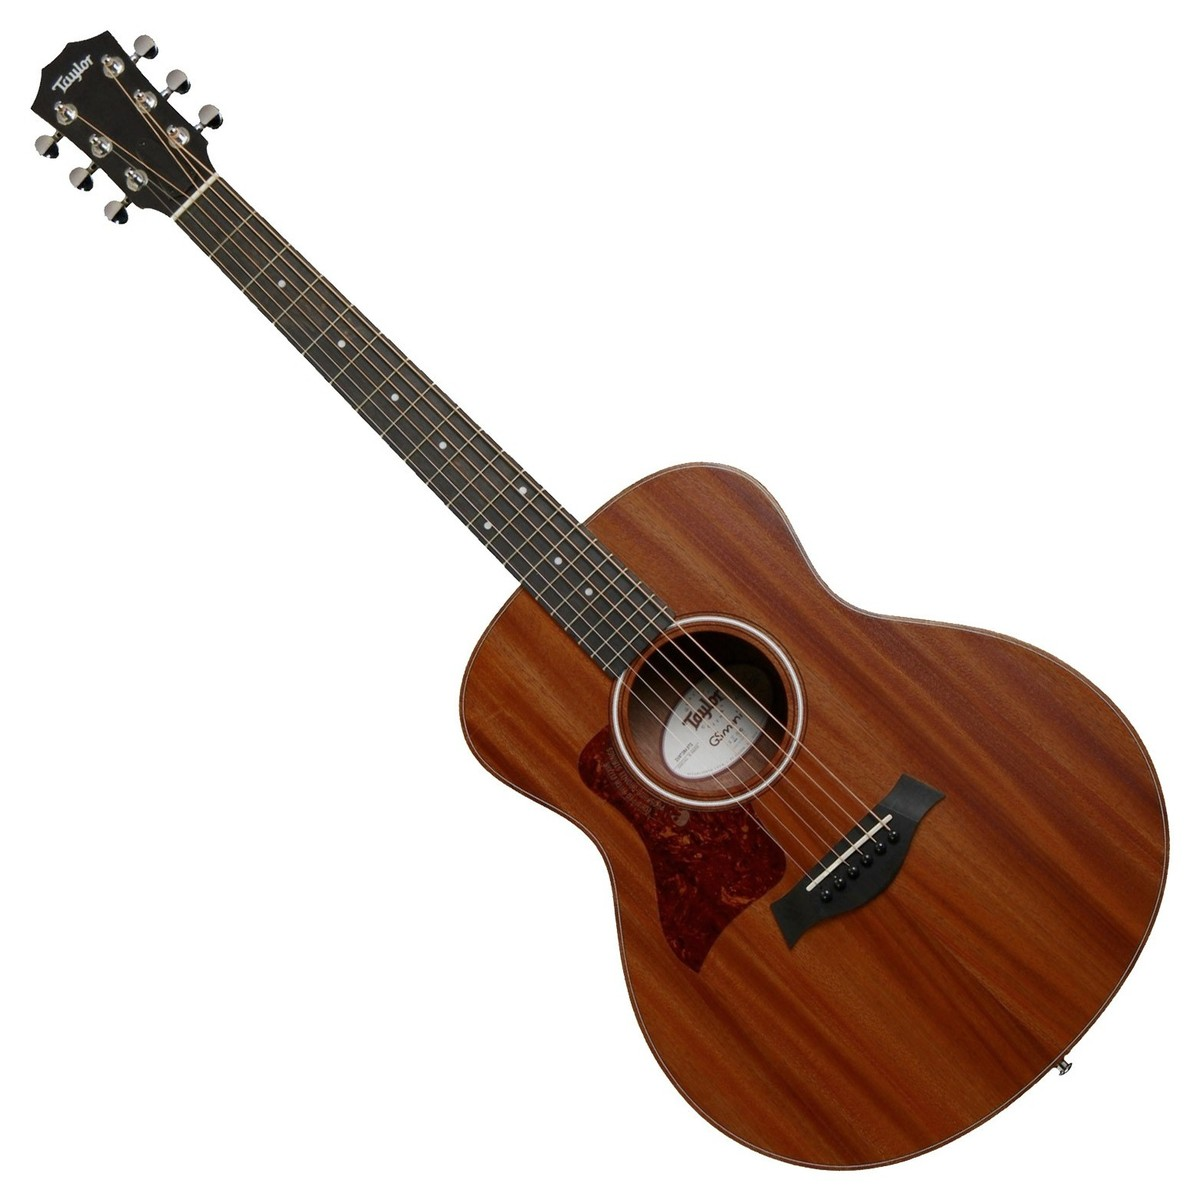 taylor gs mini left handed acoustic guitar mahogany top at. Black Bedroom Furniture Sets. Home Design Ideas